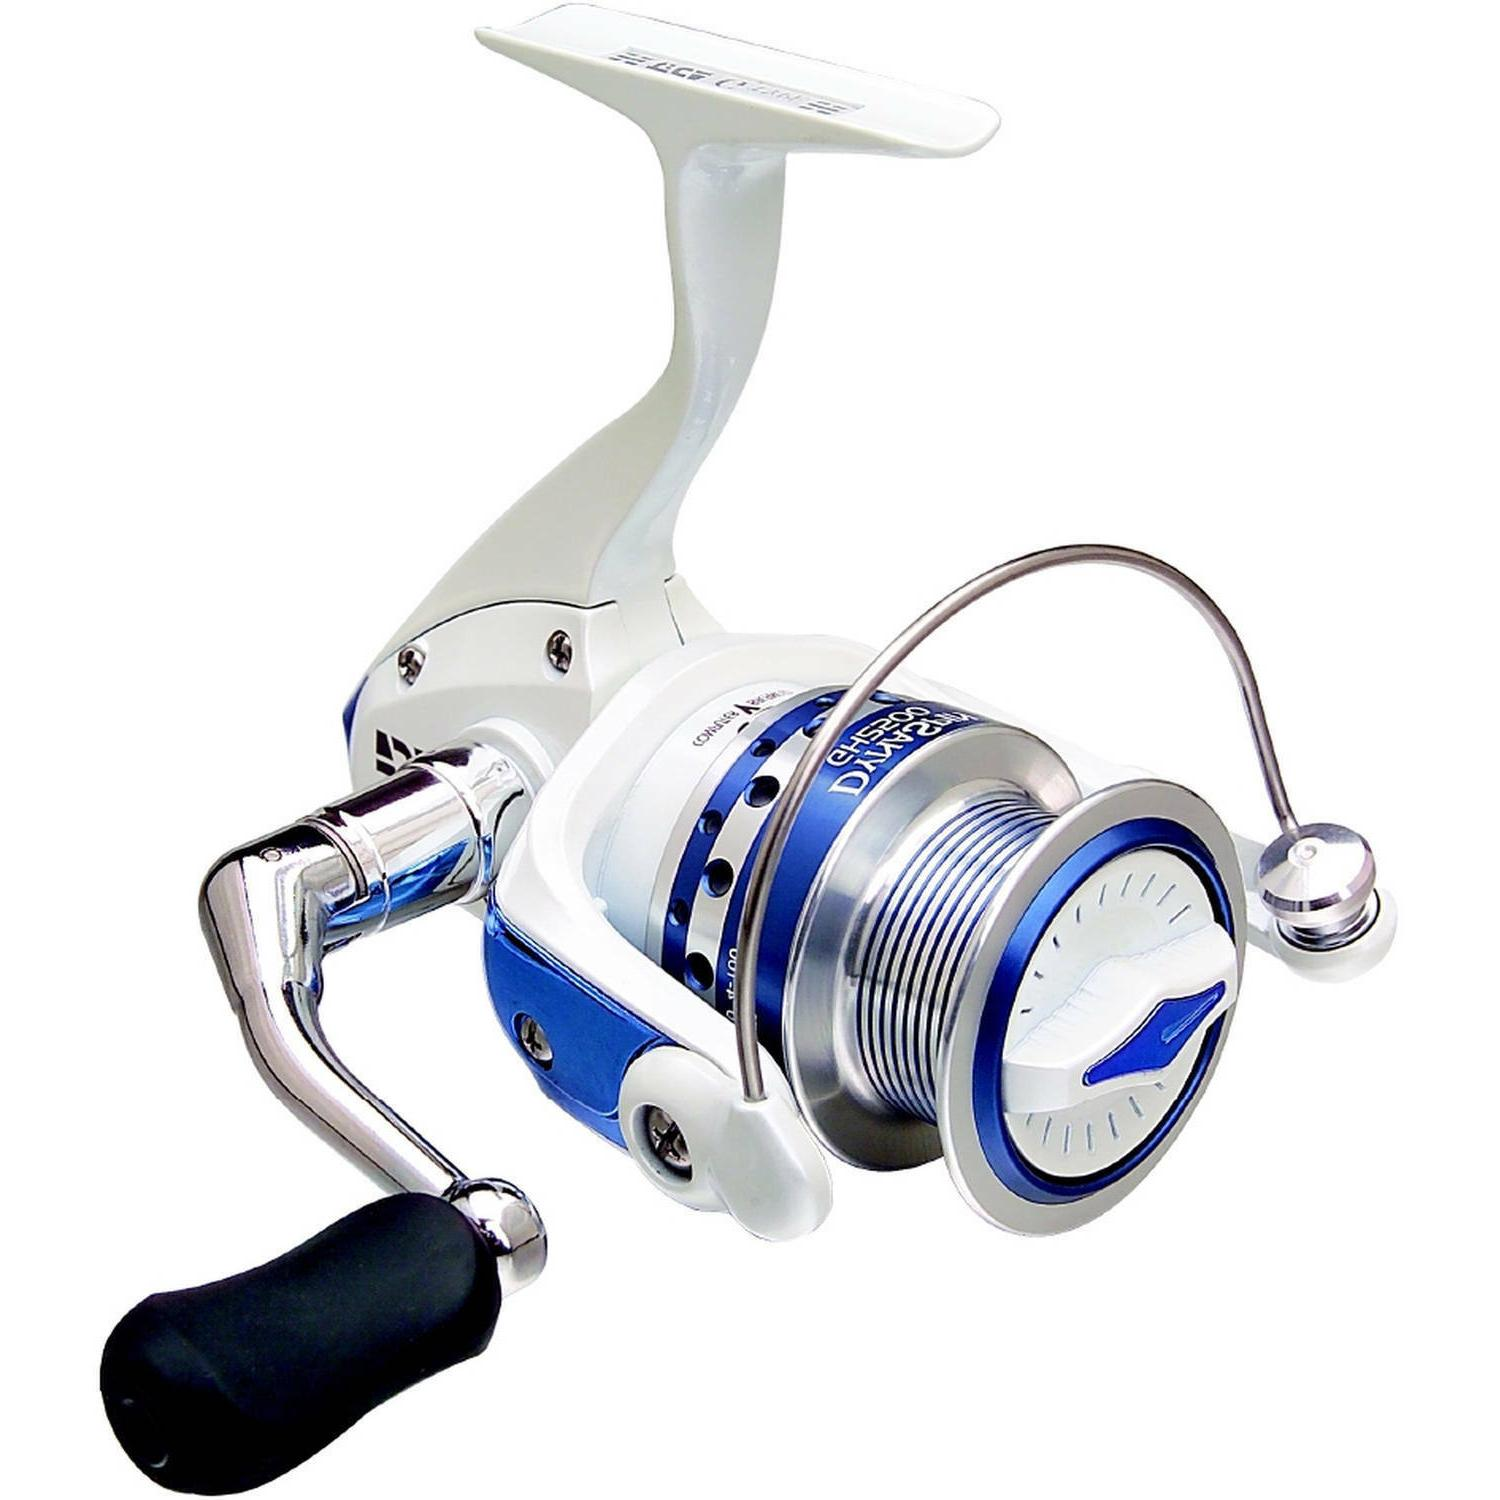 gh2500 dynaspin series spinning reel